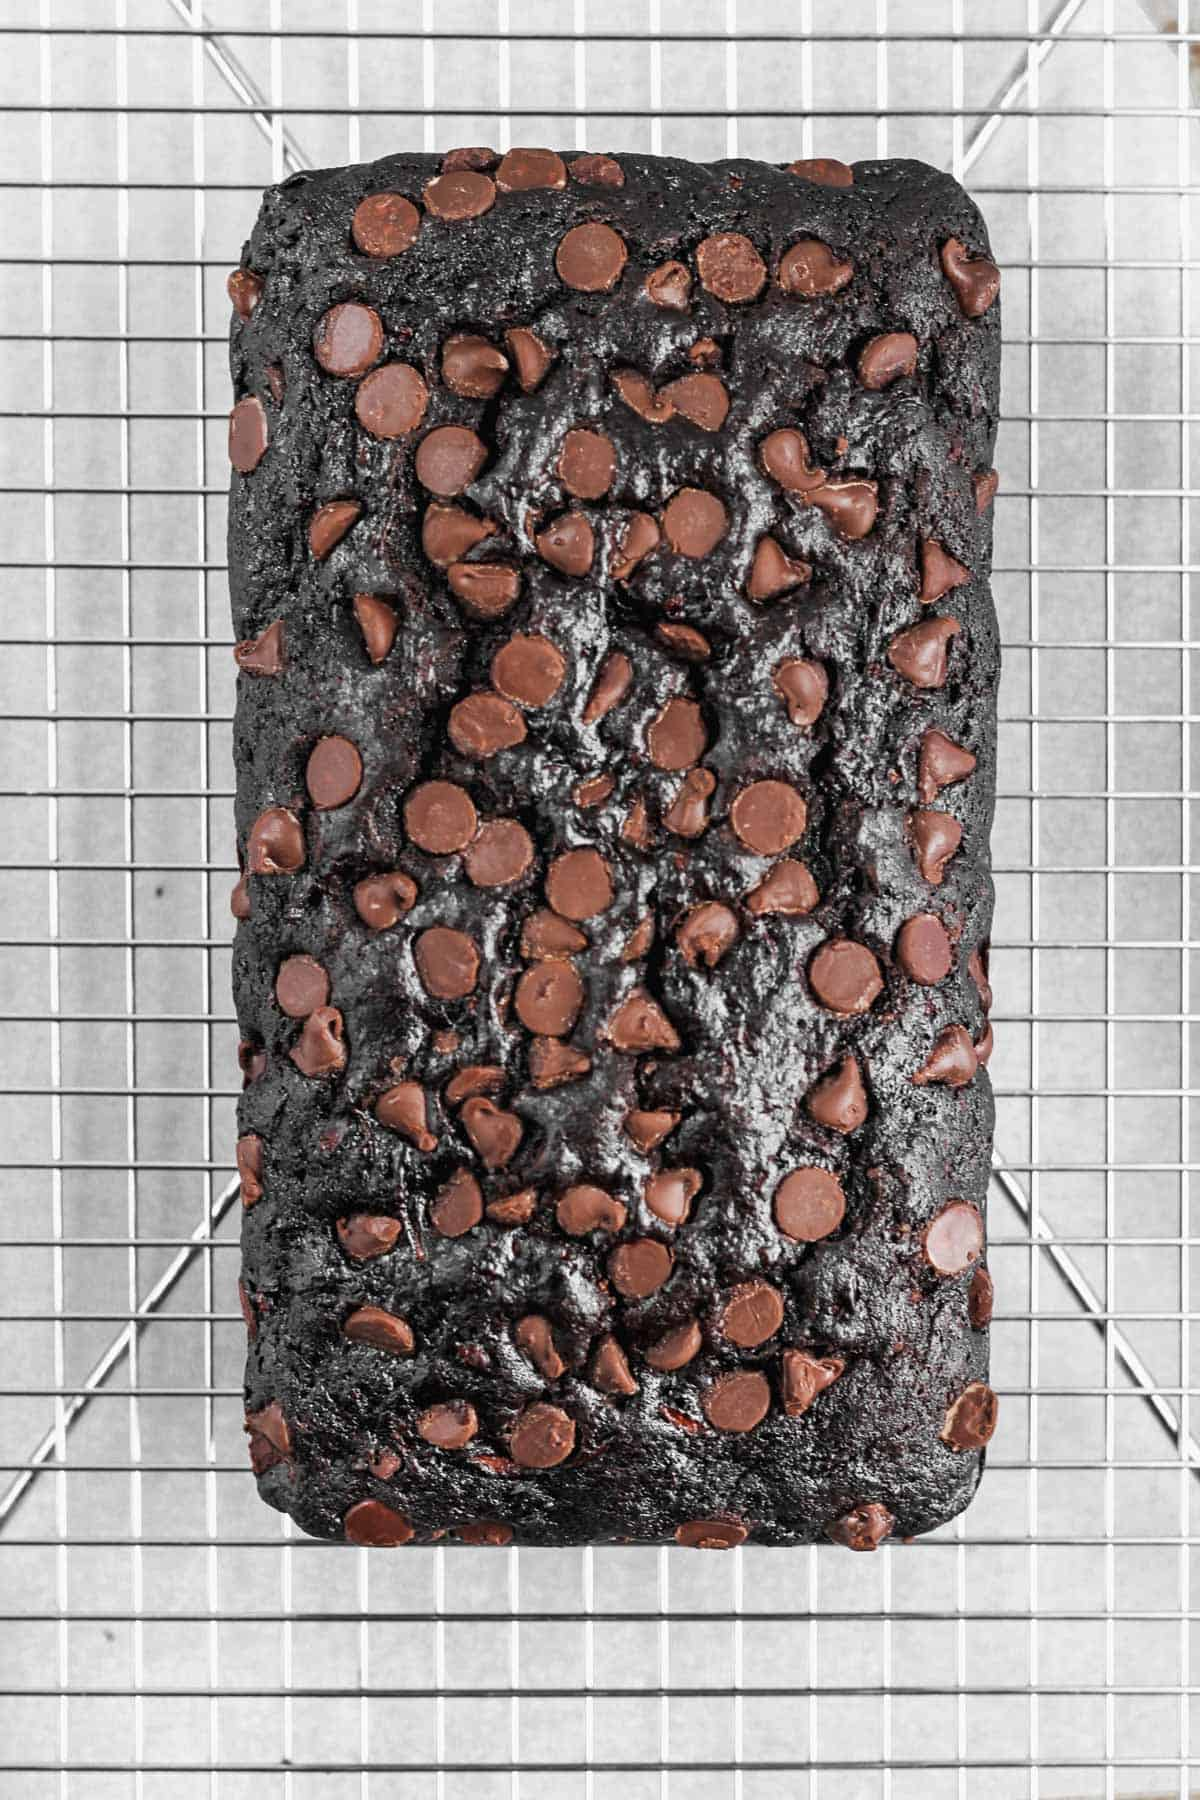 Baked chocolate zucchini bread cooling on a metal cooling rack.